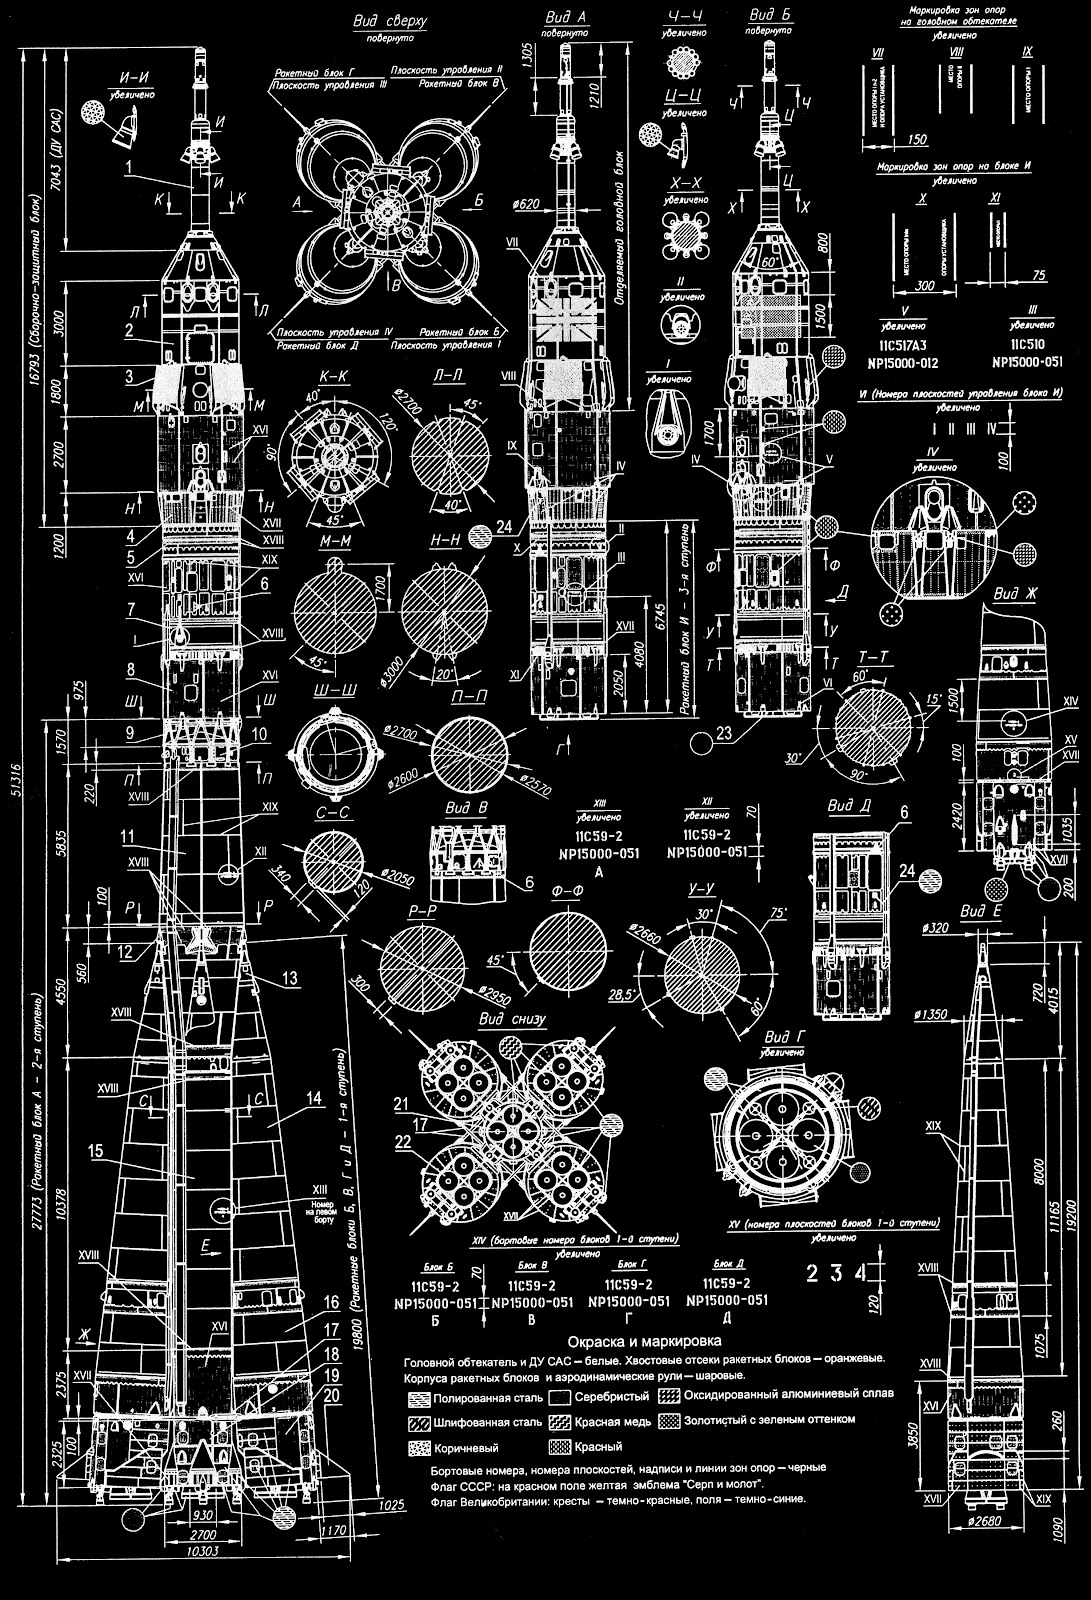 Soyuz rocket blueprint